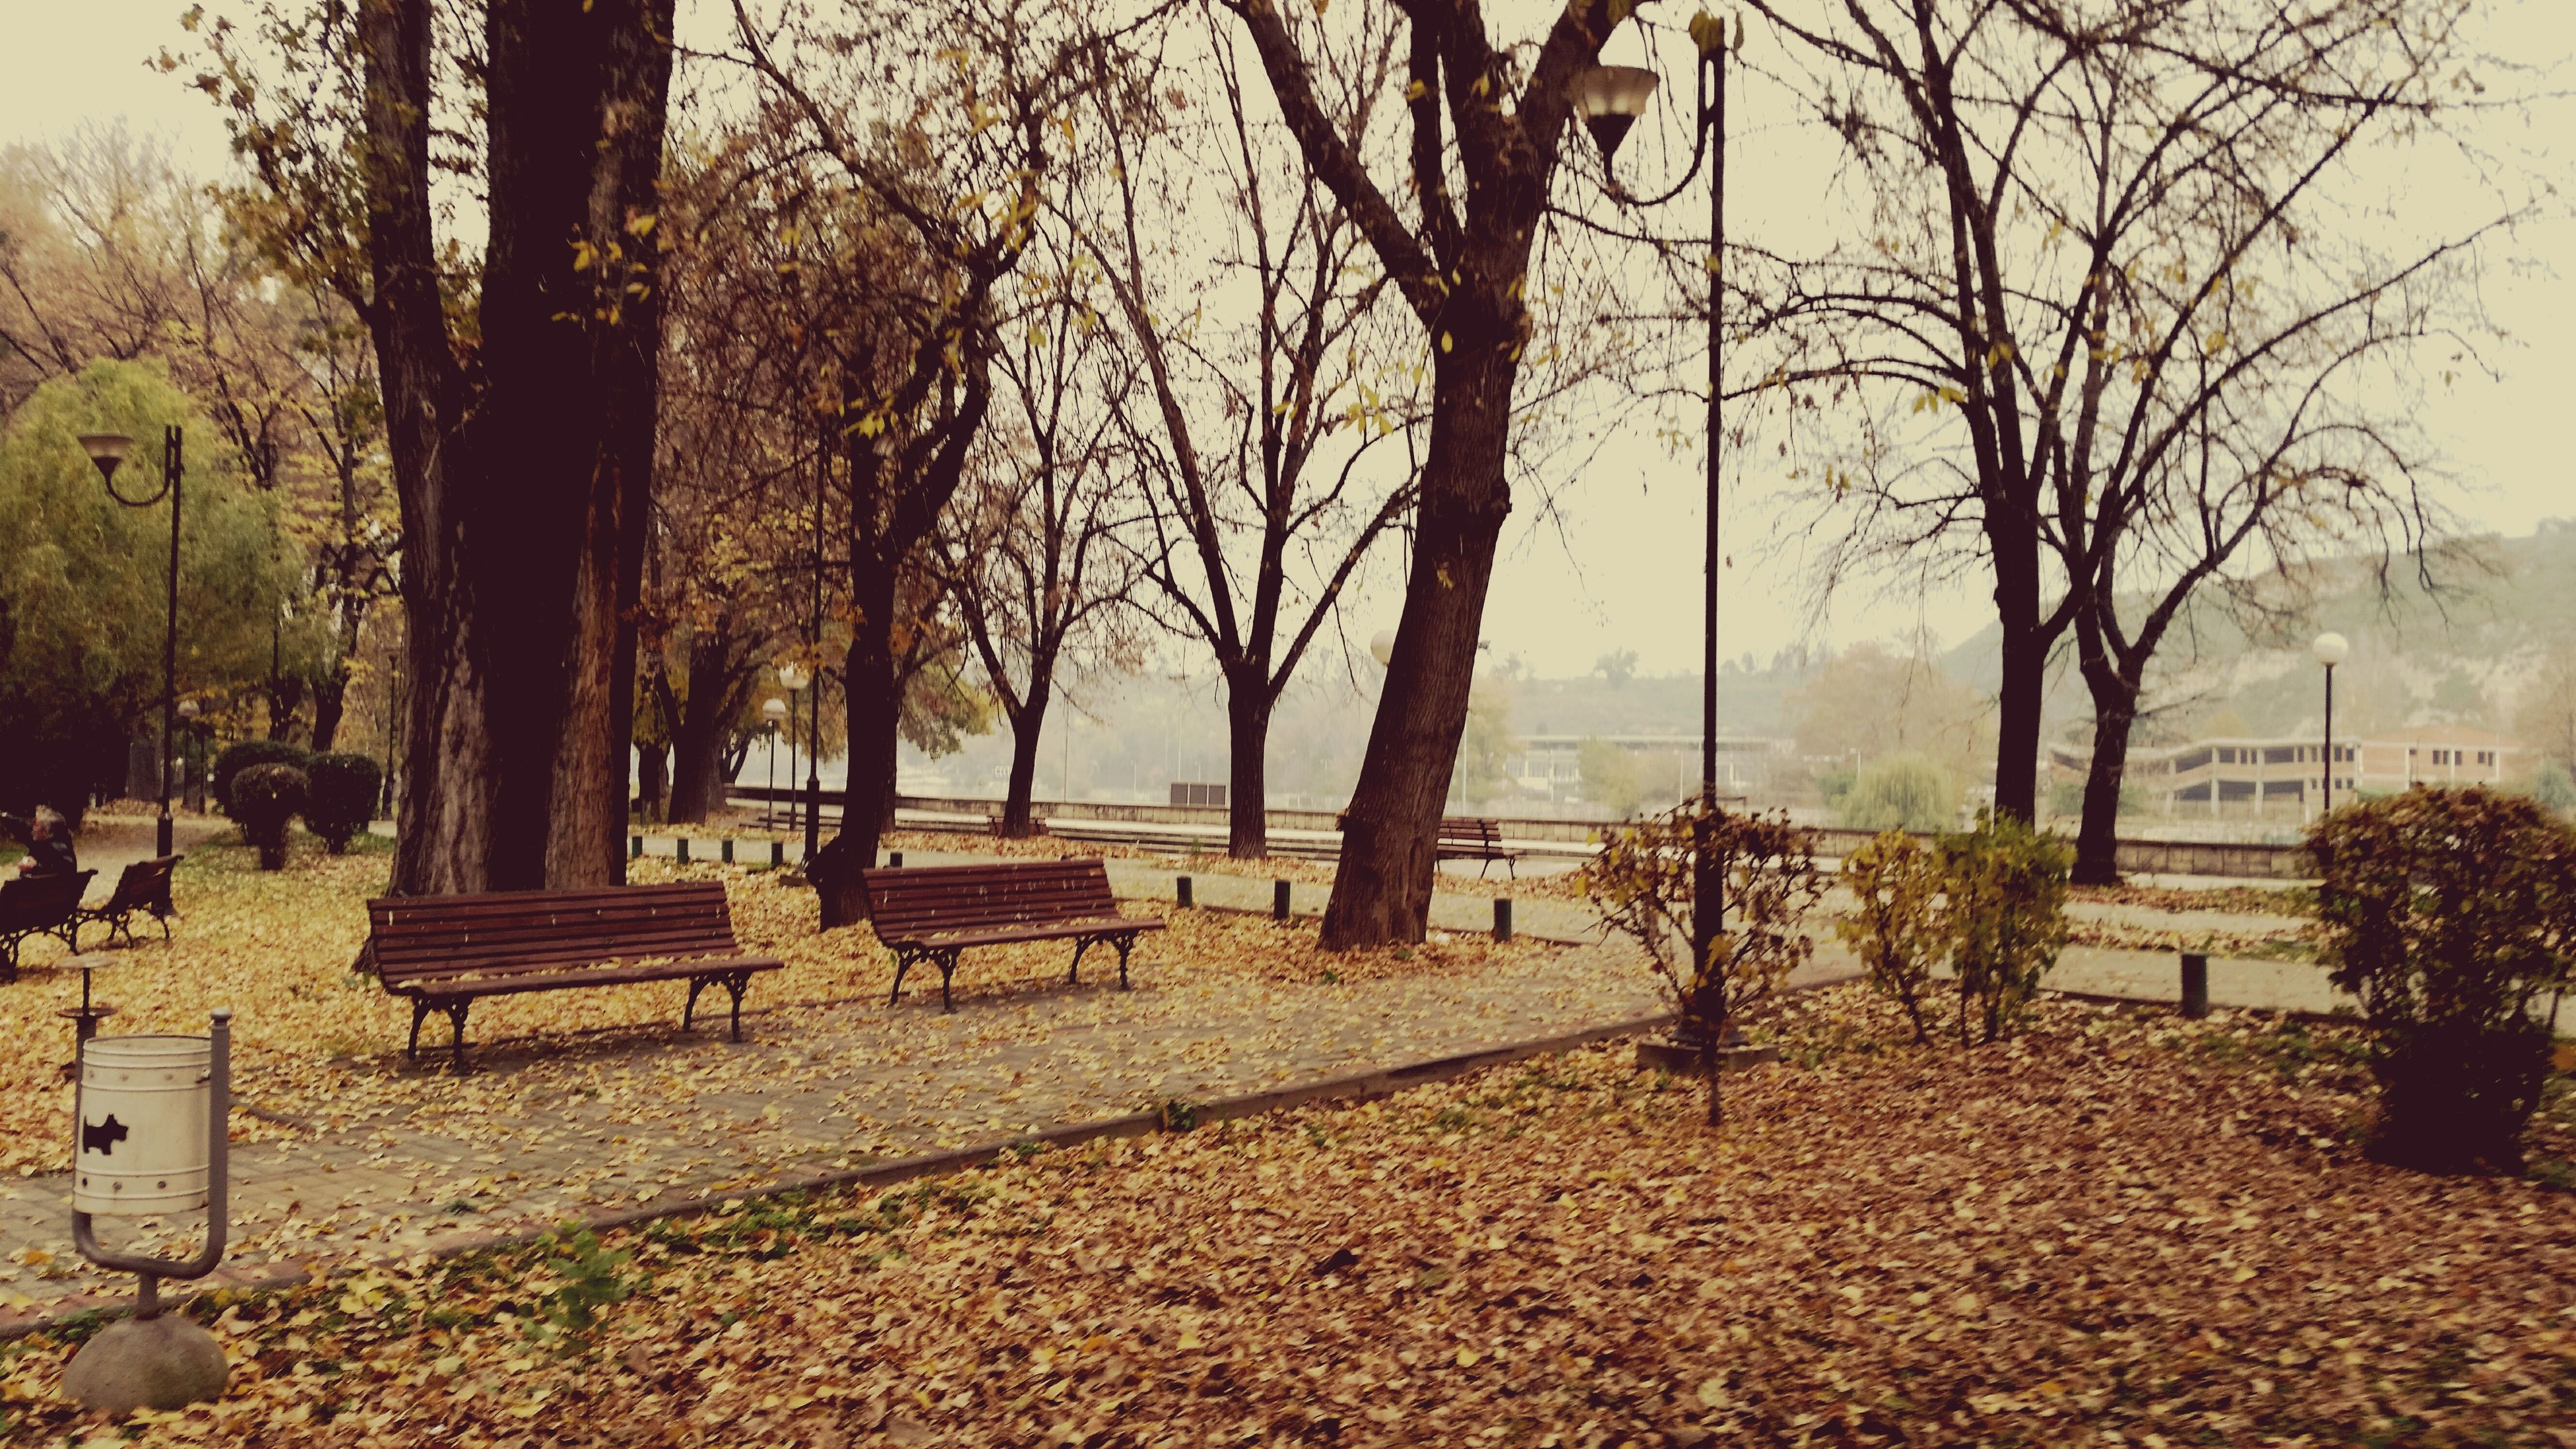 tree, bench, tree trunk, tranquility, tranquil scene, branch, nature, park - man made space, bare tree, scenics, water, growth, absence, park bench, empty, day, beauty in nature, sky, relaxation, chair